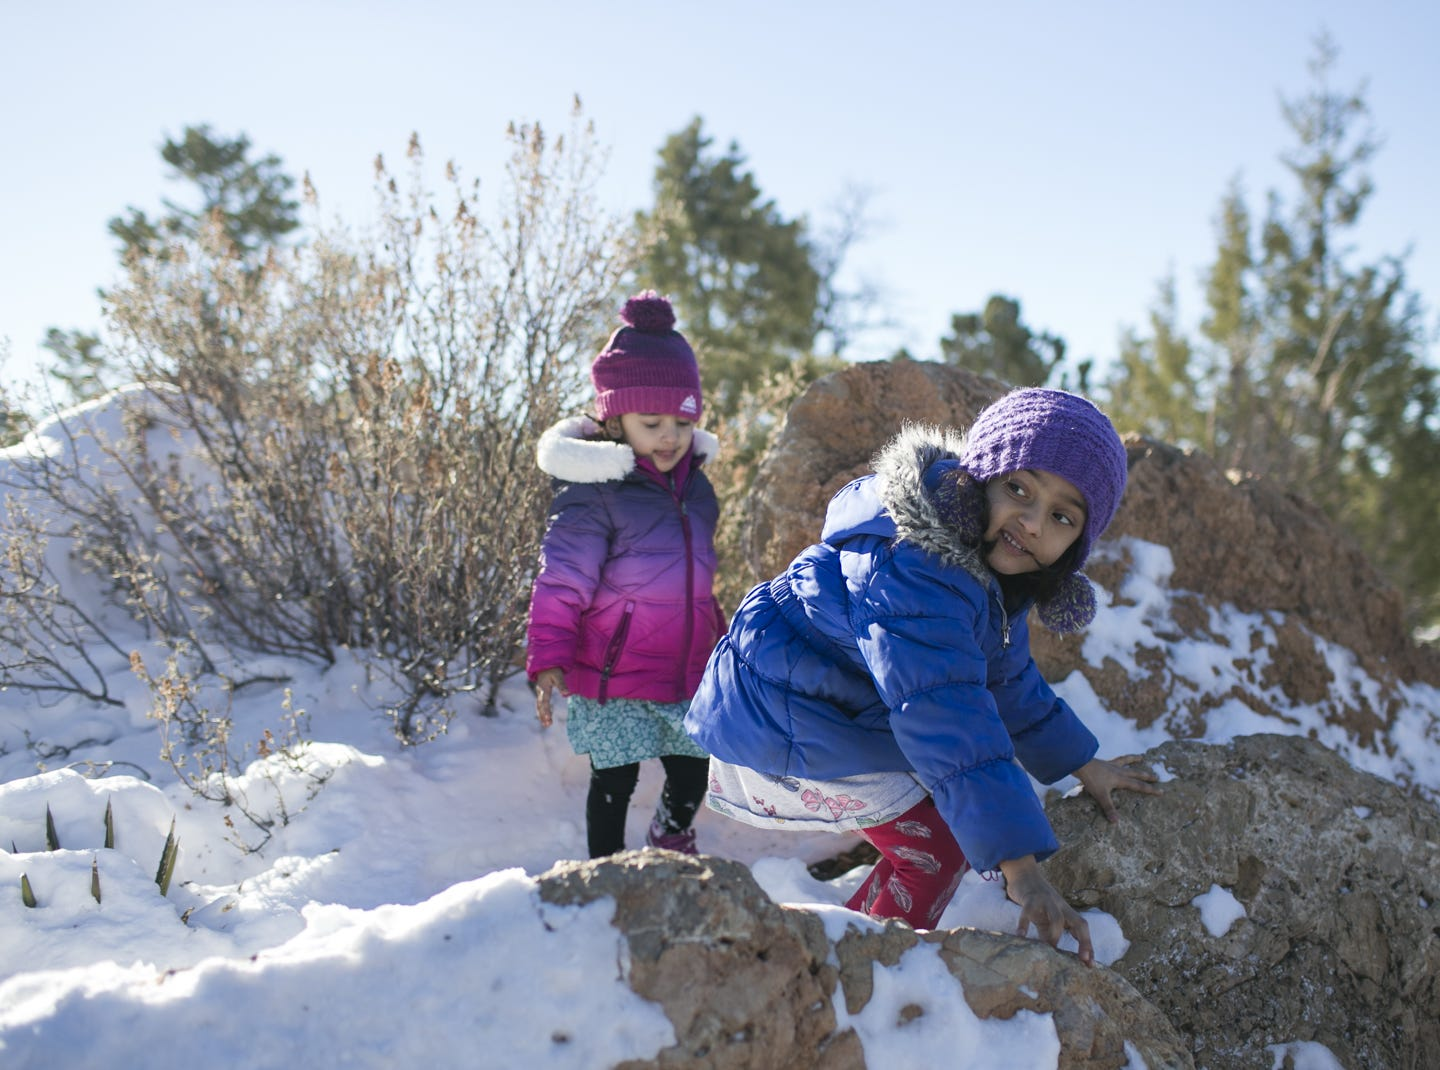 2-year-old Avanya Sharma (left) and her sister, 5-year-old  Navya Sharma (right), visiting with their family from Seattle,  play in the snow at Grand Canyon National Park on Jan. 4, 2019. The park was staffed at minimum capacity due to the government shutdown but retained much of its services due to an executive order issued by Arizona Gov. Doug Ducey to run the park with state funds in the event of a shutdown.